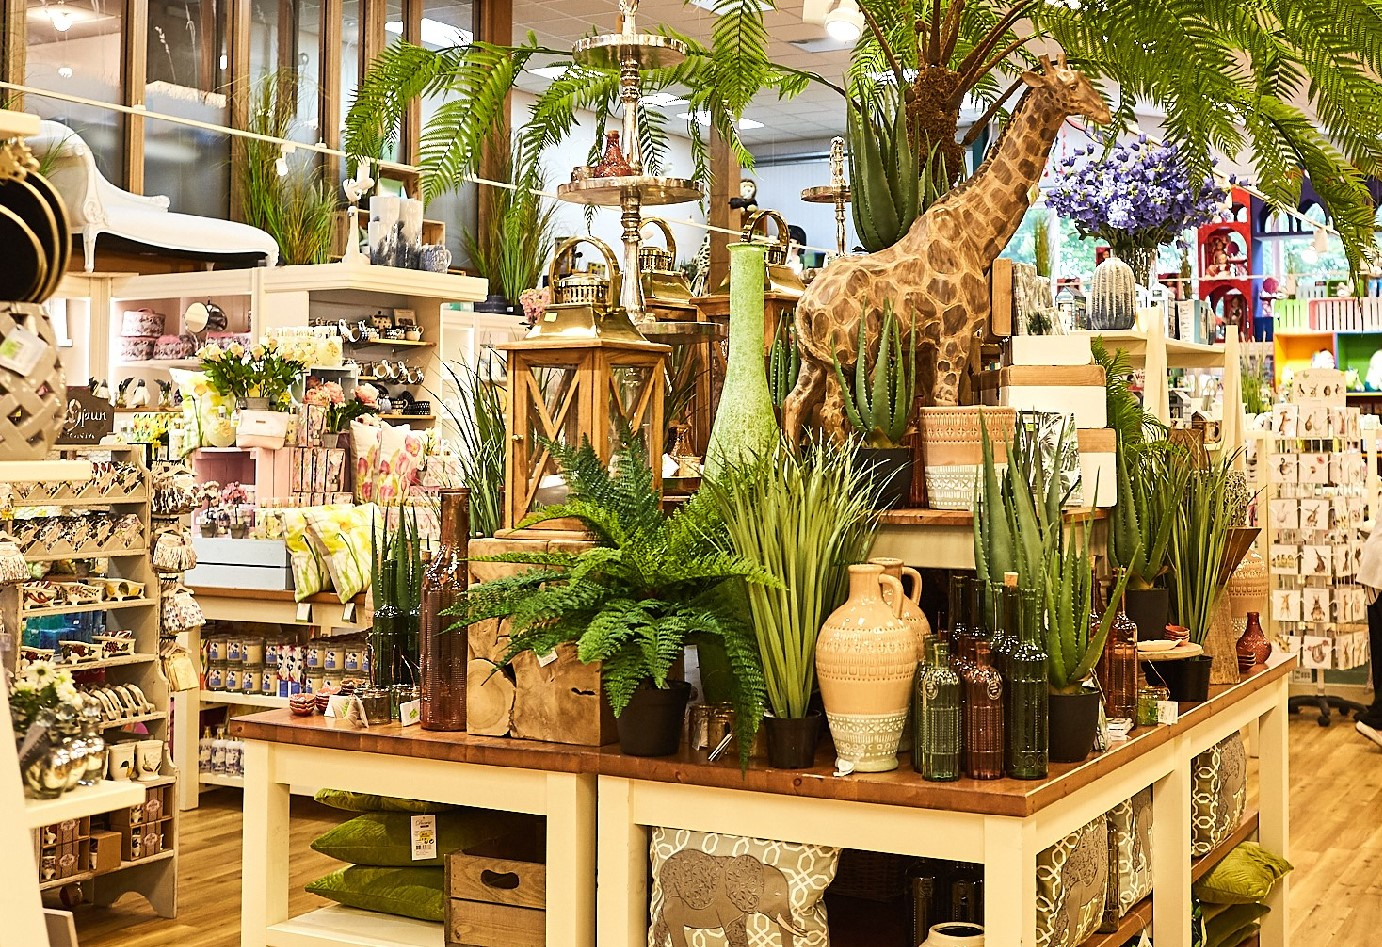 gifts area with giraffe